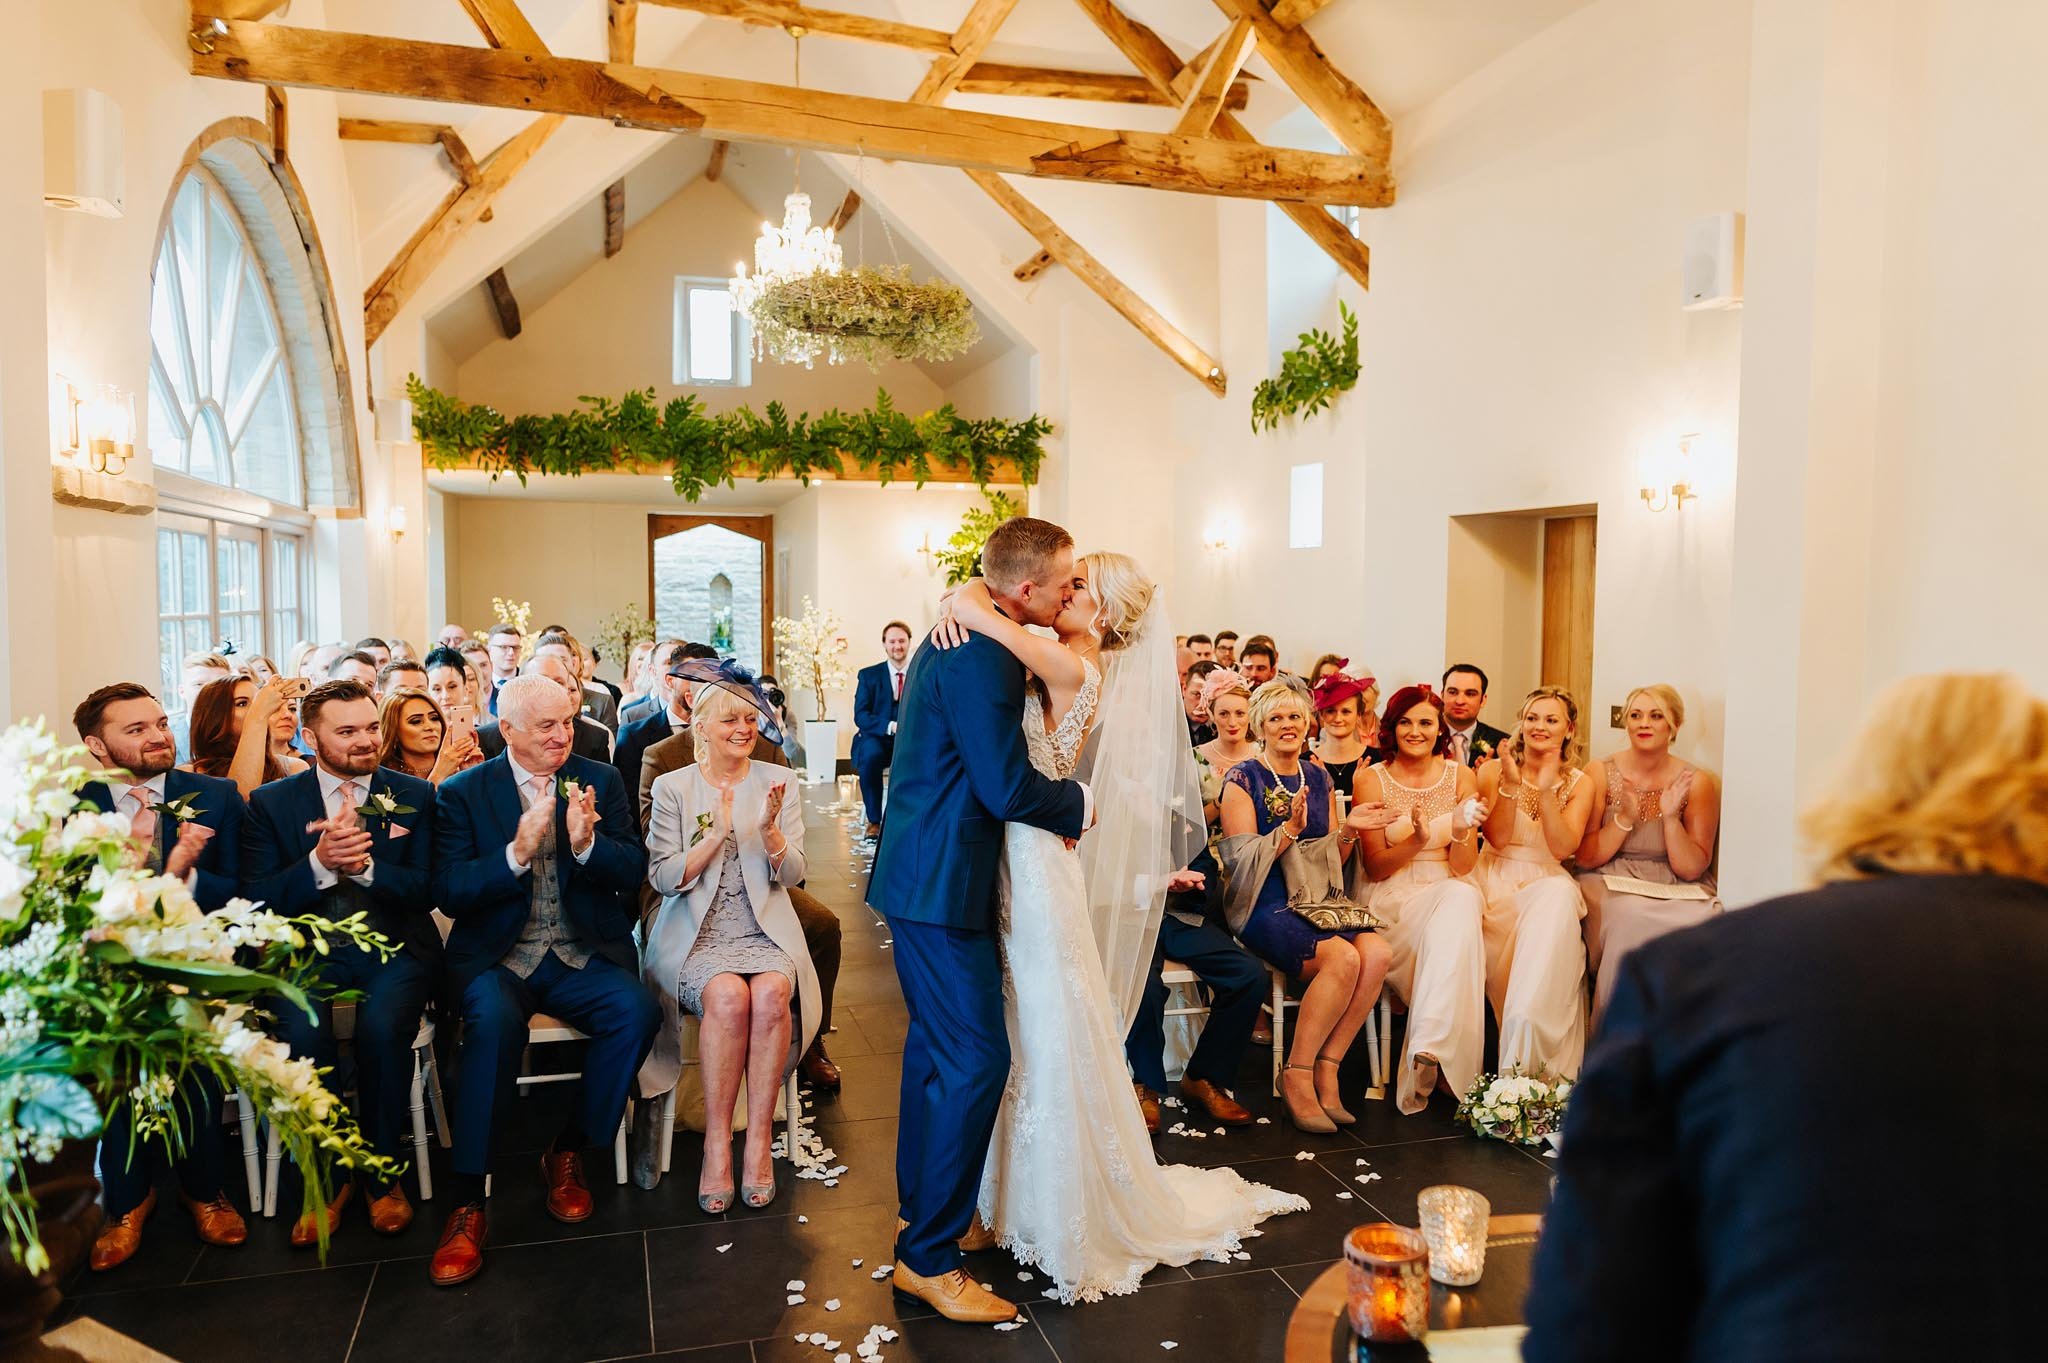 lemore manor wedding herefordshire 45 - Lemore Manor wedding, Herefordshire - West Midlands | Sadie + Ken